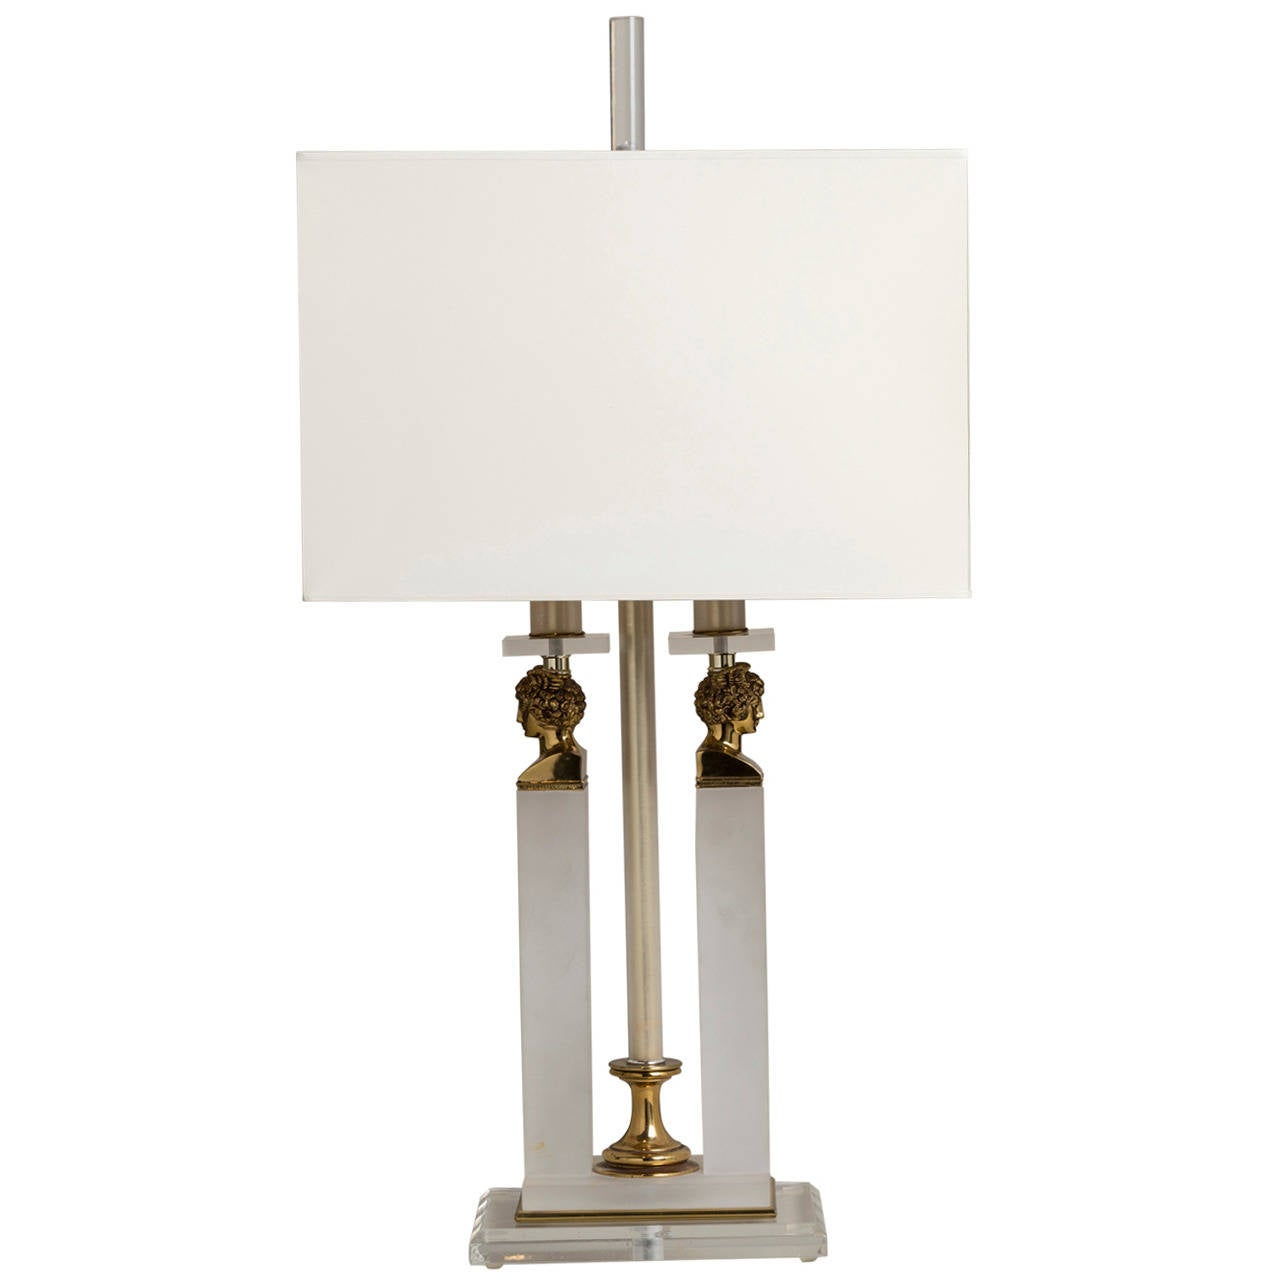 Single Lucite and Brass Neoclassical Style Table Lamp 1970s